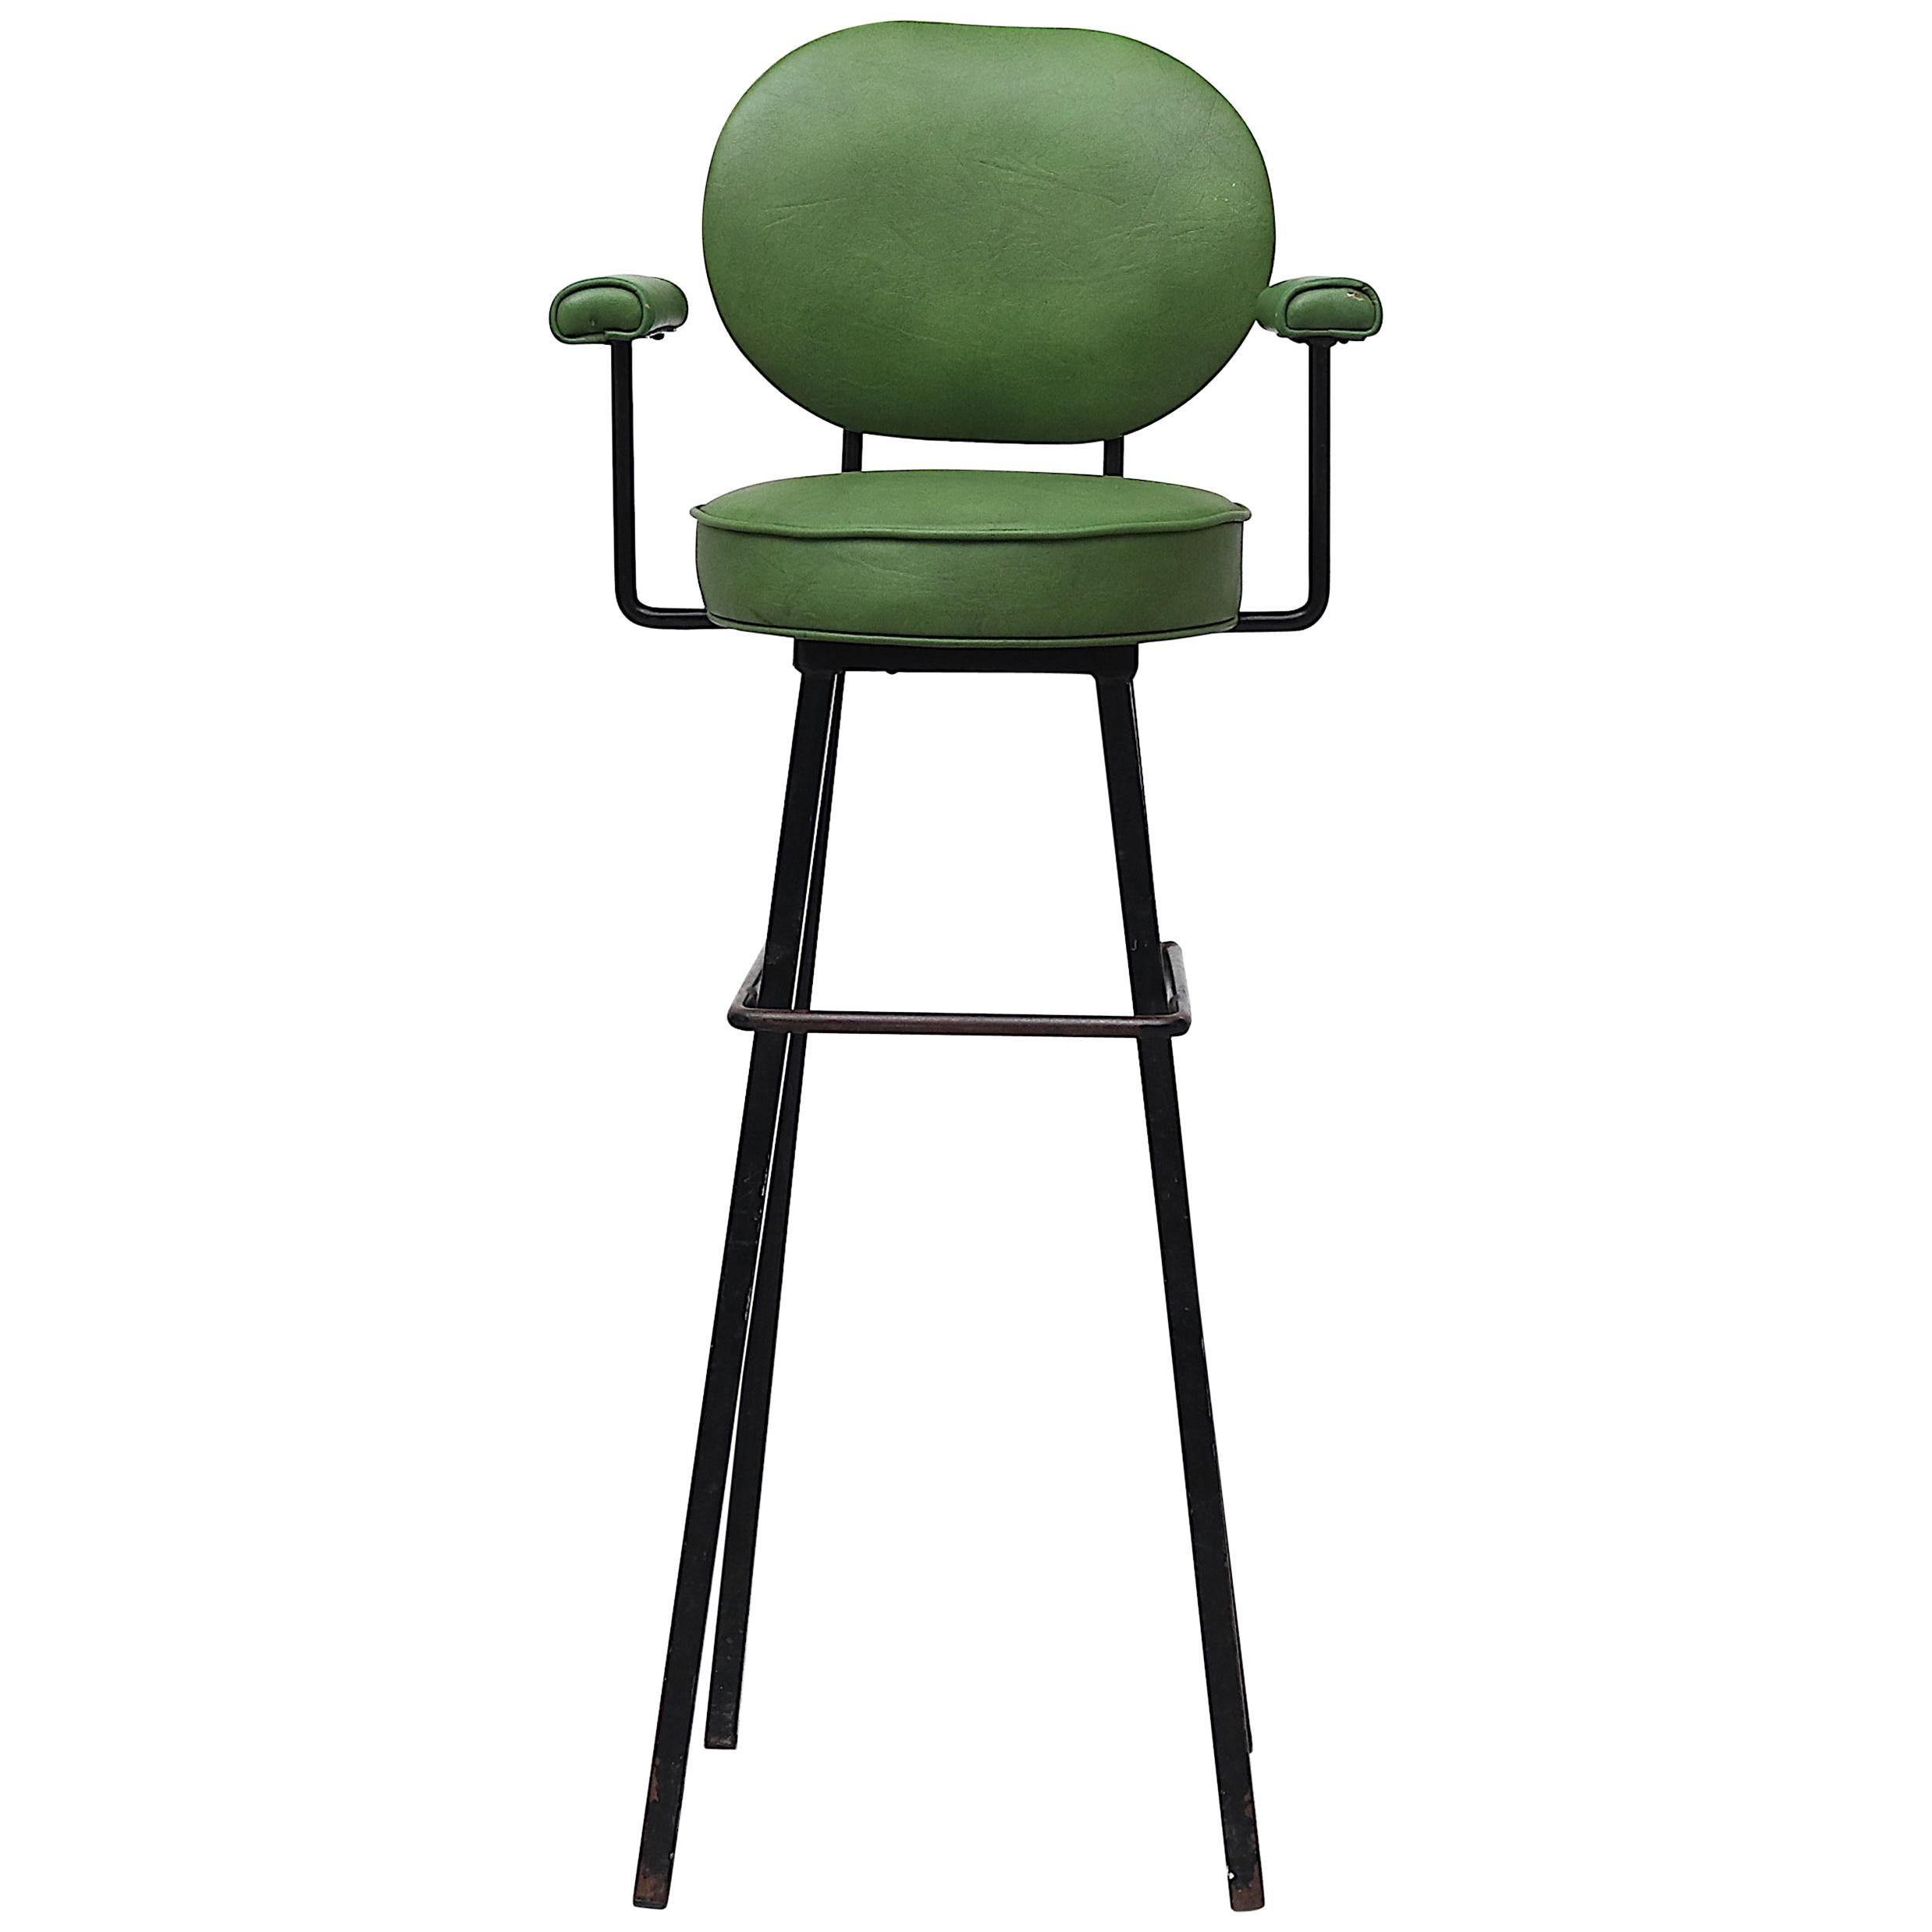 Rare Midcentury Child's High Chair by Kembo